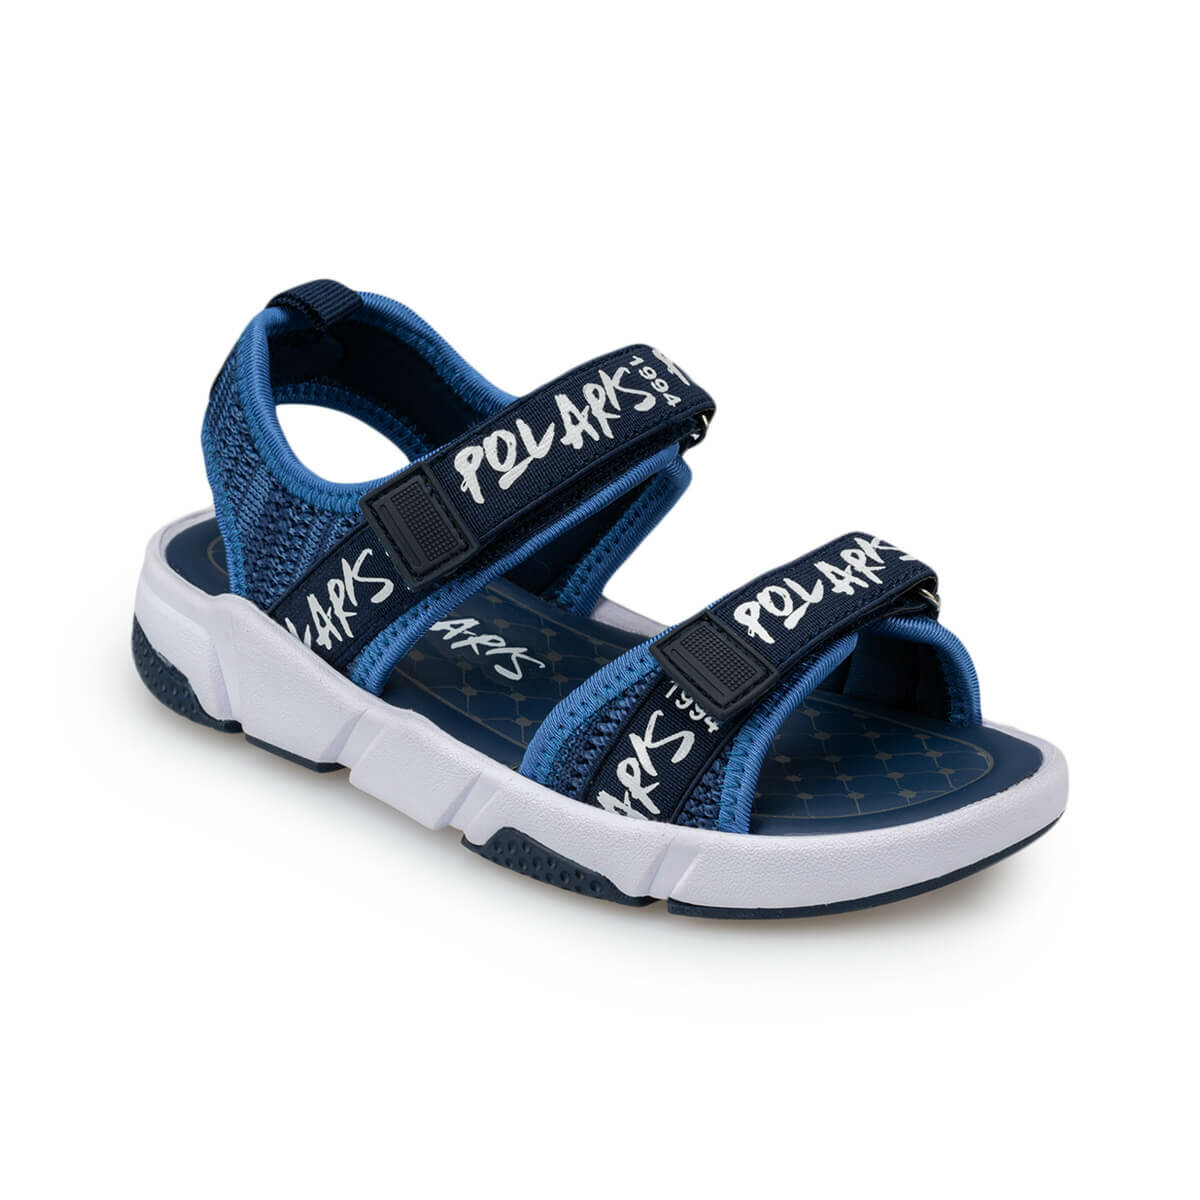 FLO 91.511307.F Navy Blue Male Child Sports Shoes Polaris